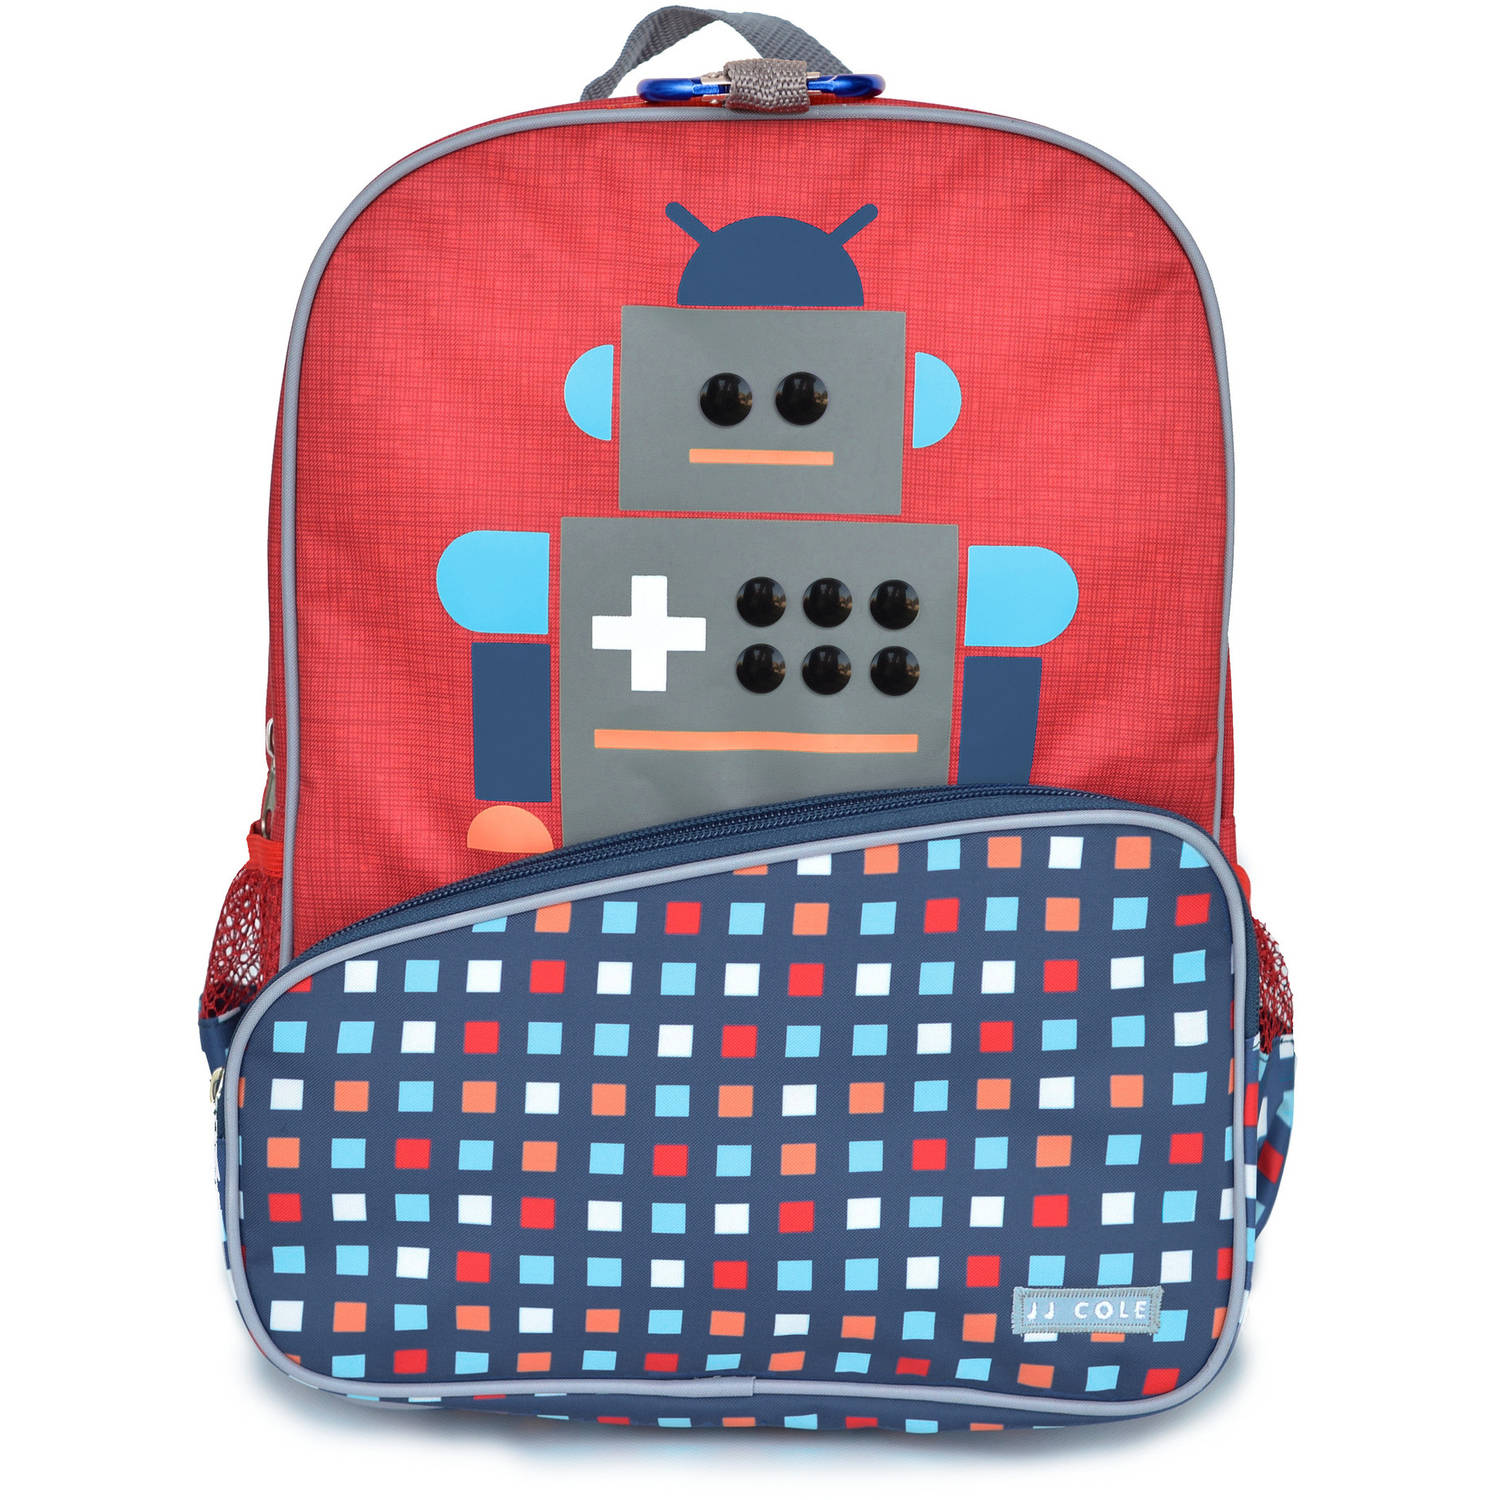 Little JJ Cole Toddler Backpack, Robot